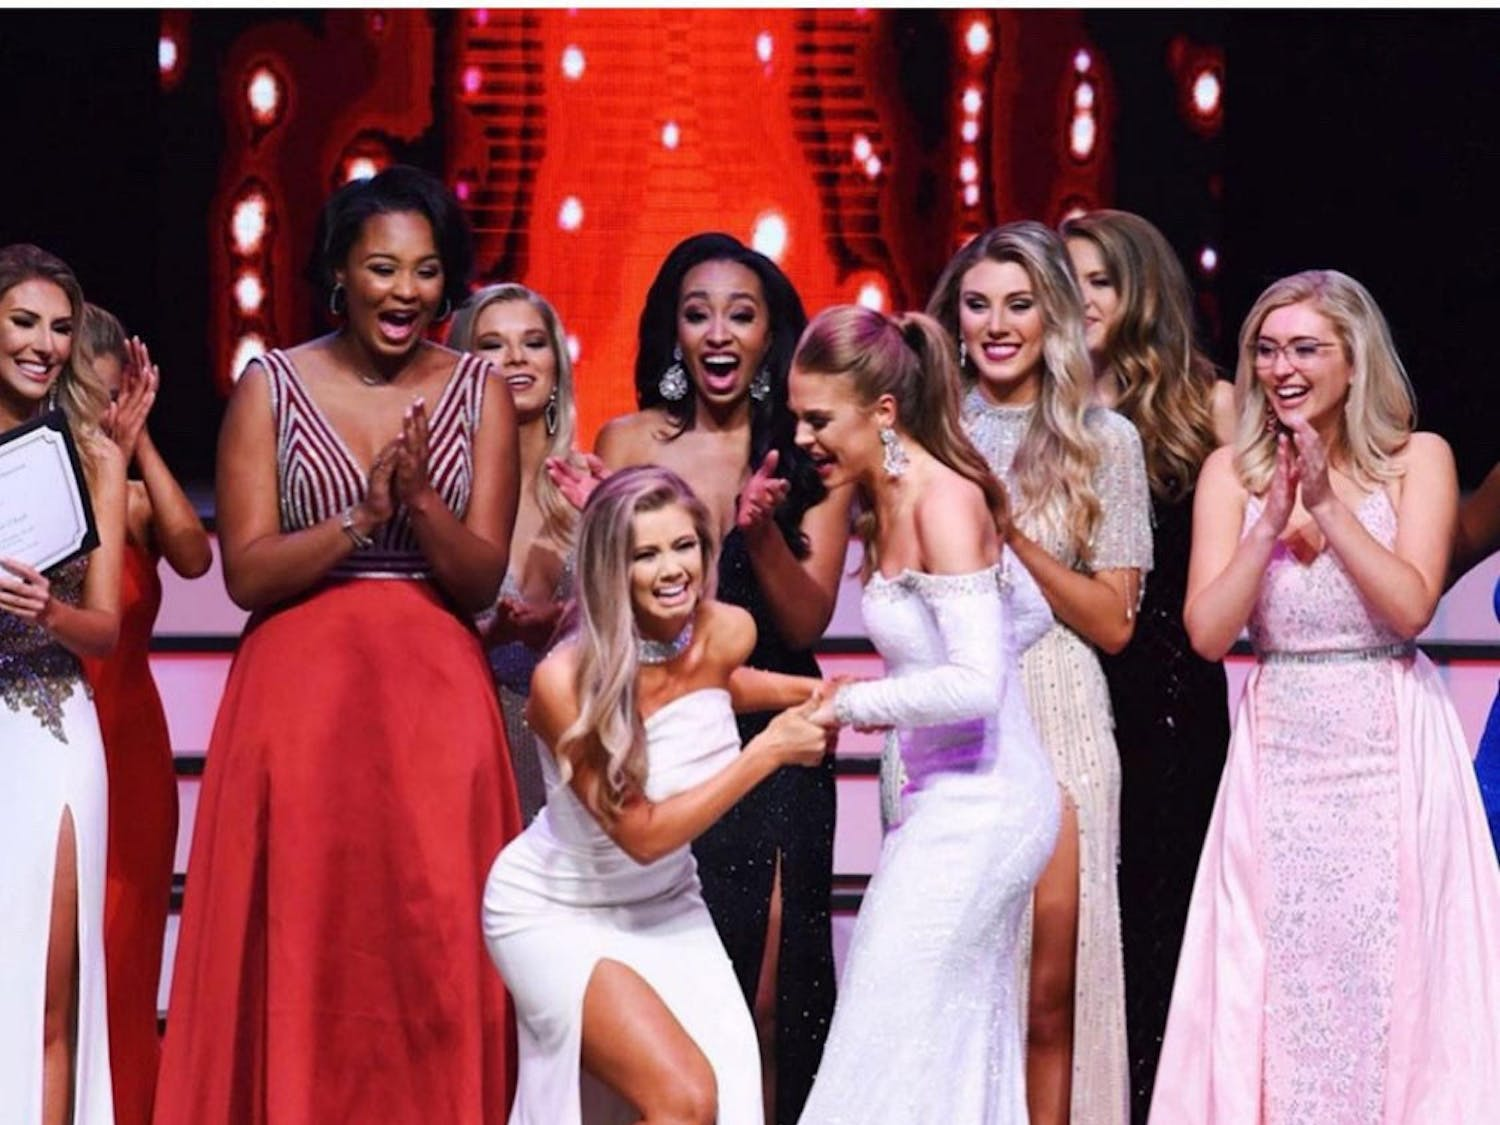 Leah Roddenberry (right in white) congratulating the winner of Miss Florida.